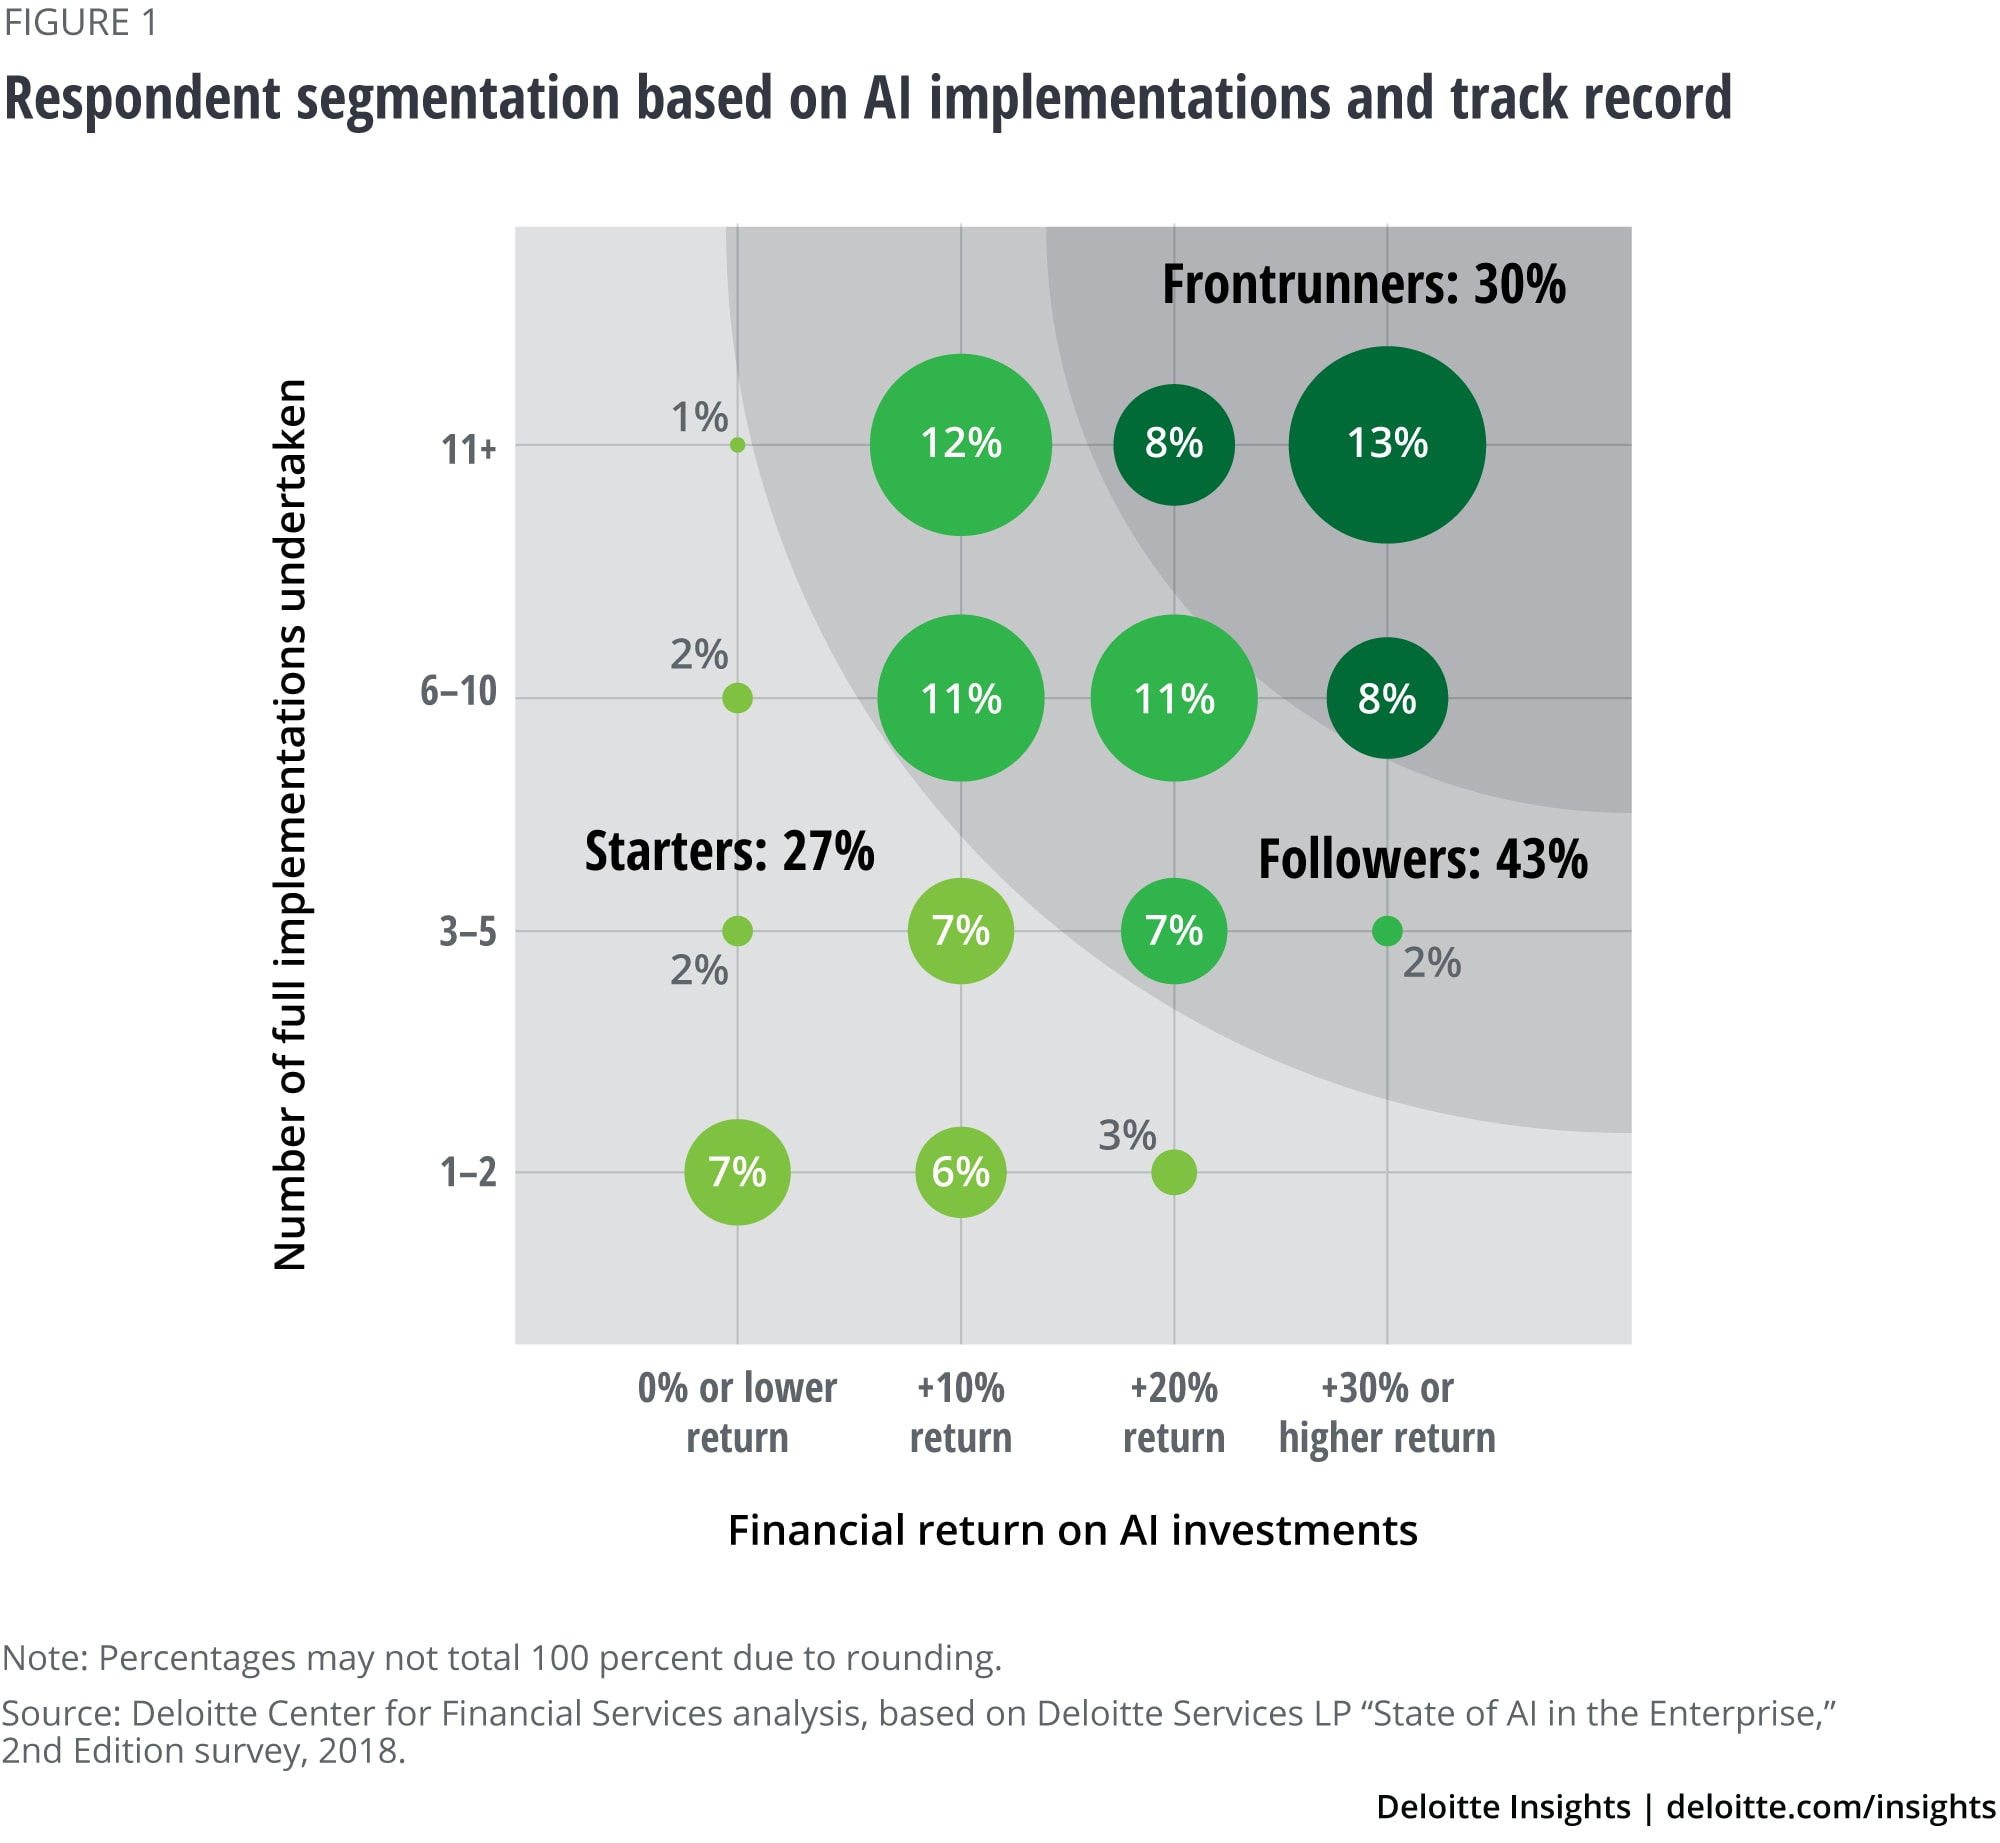 Respondent segmentation based on AI implementations and track record